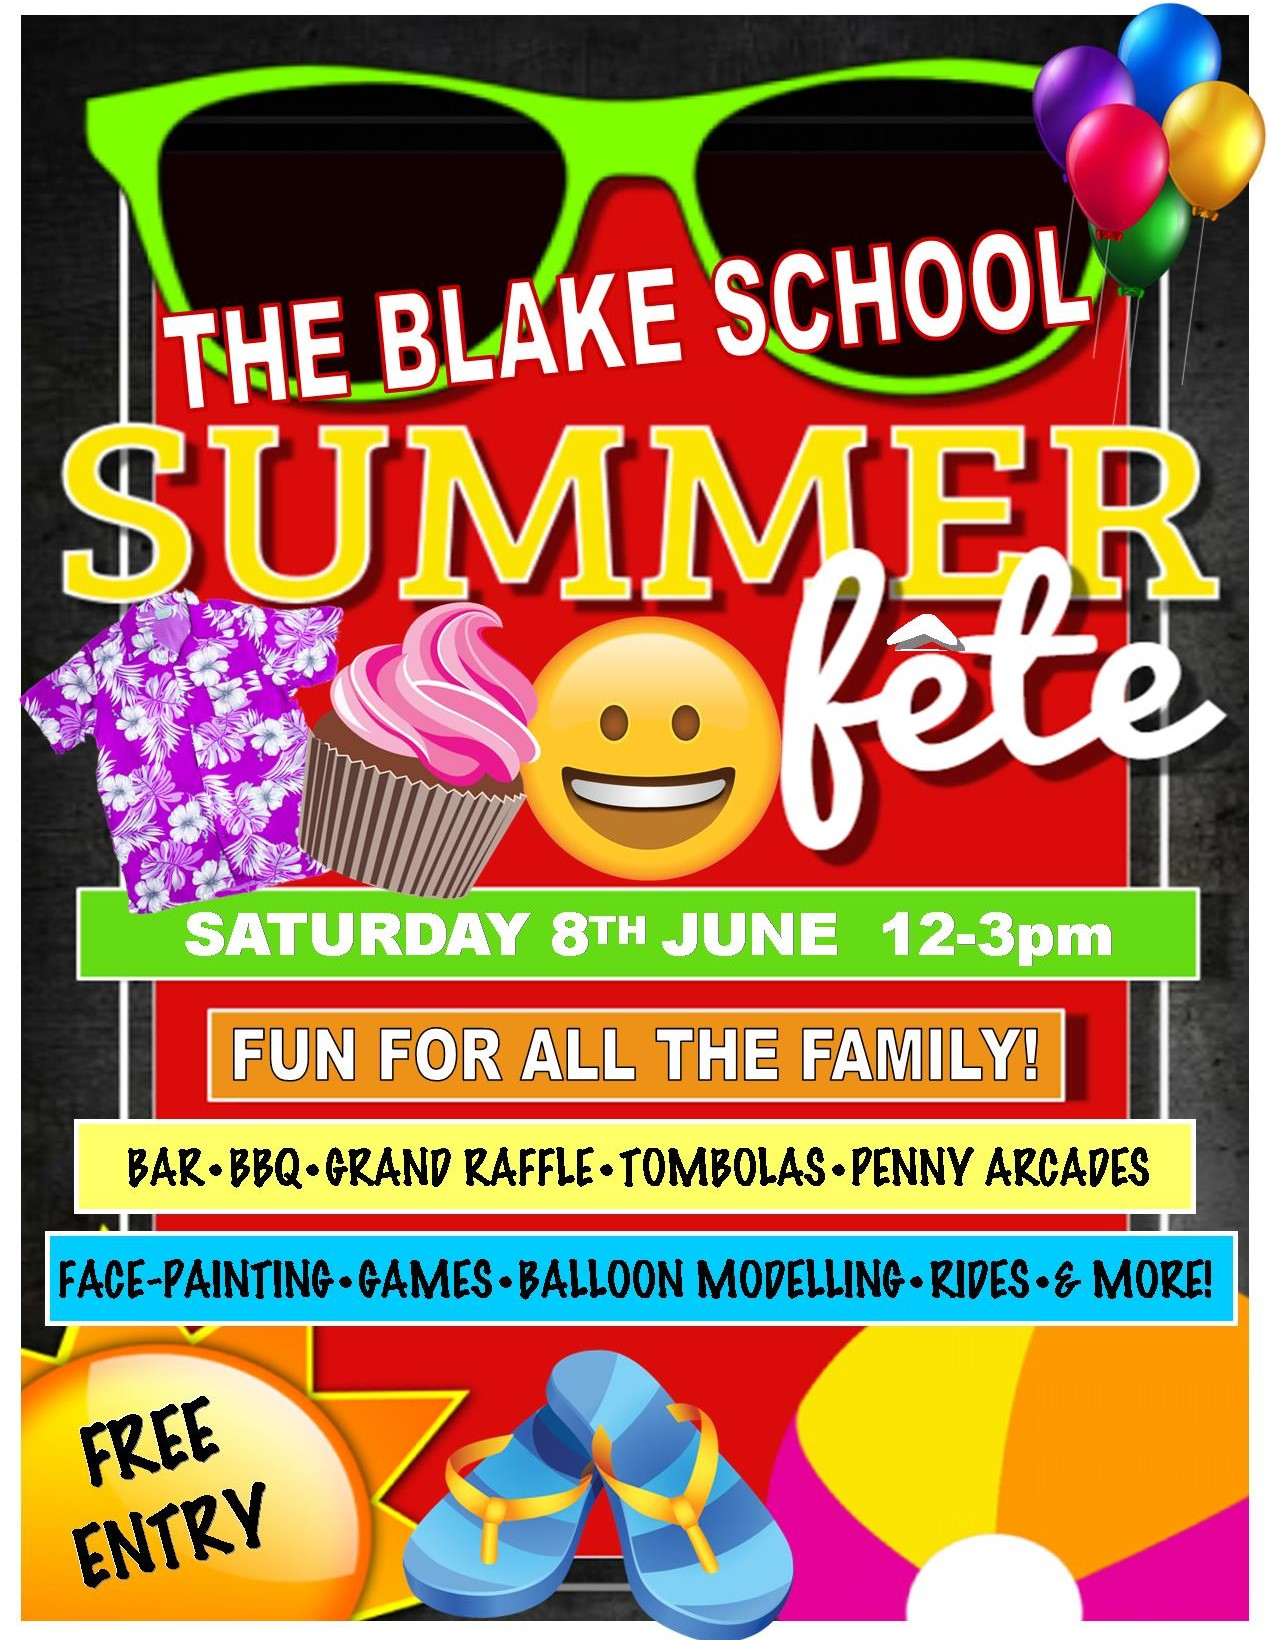 The Blake School Summer Fete